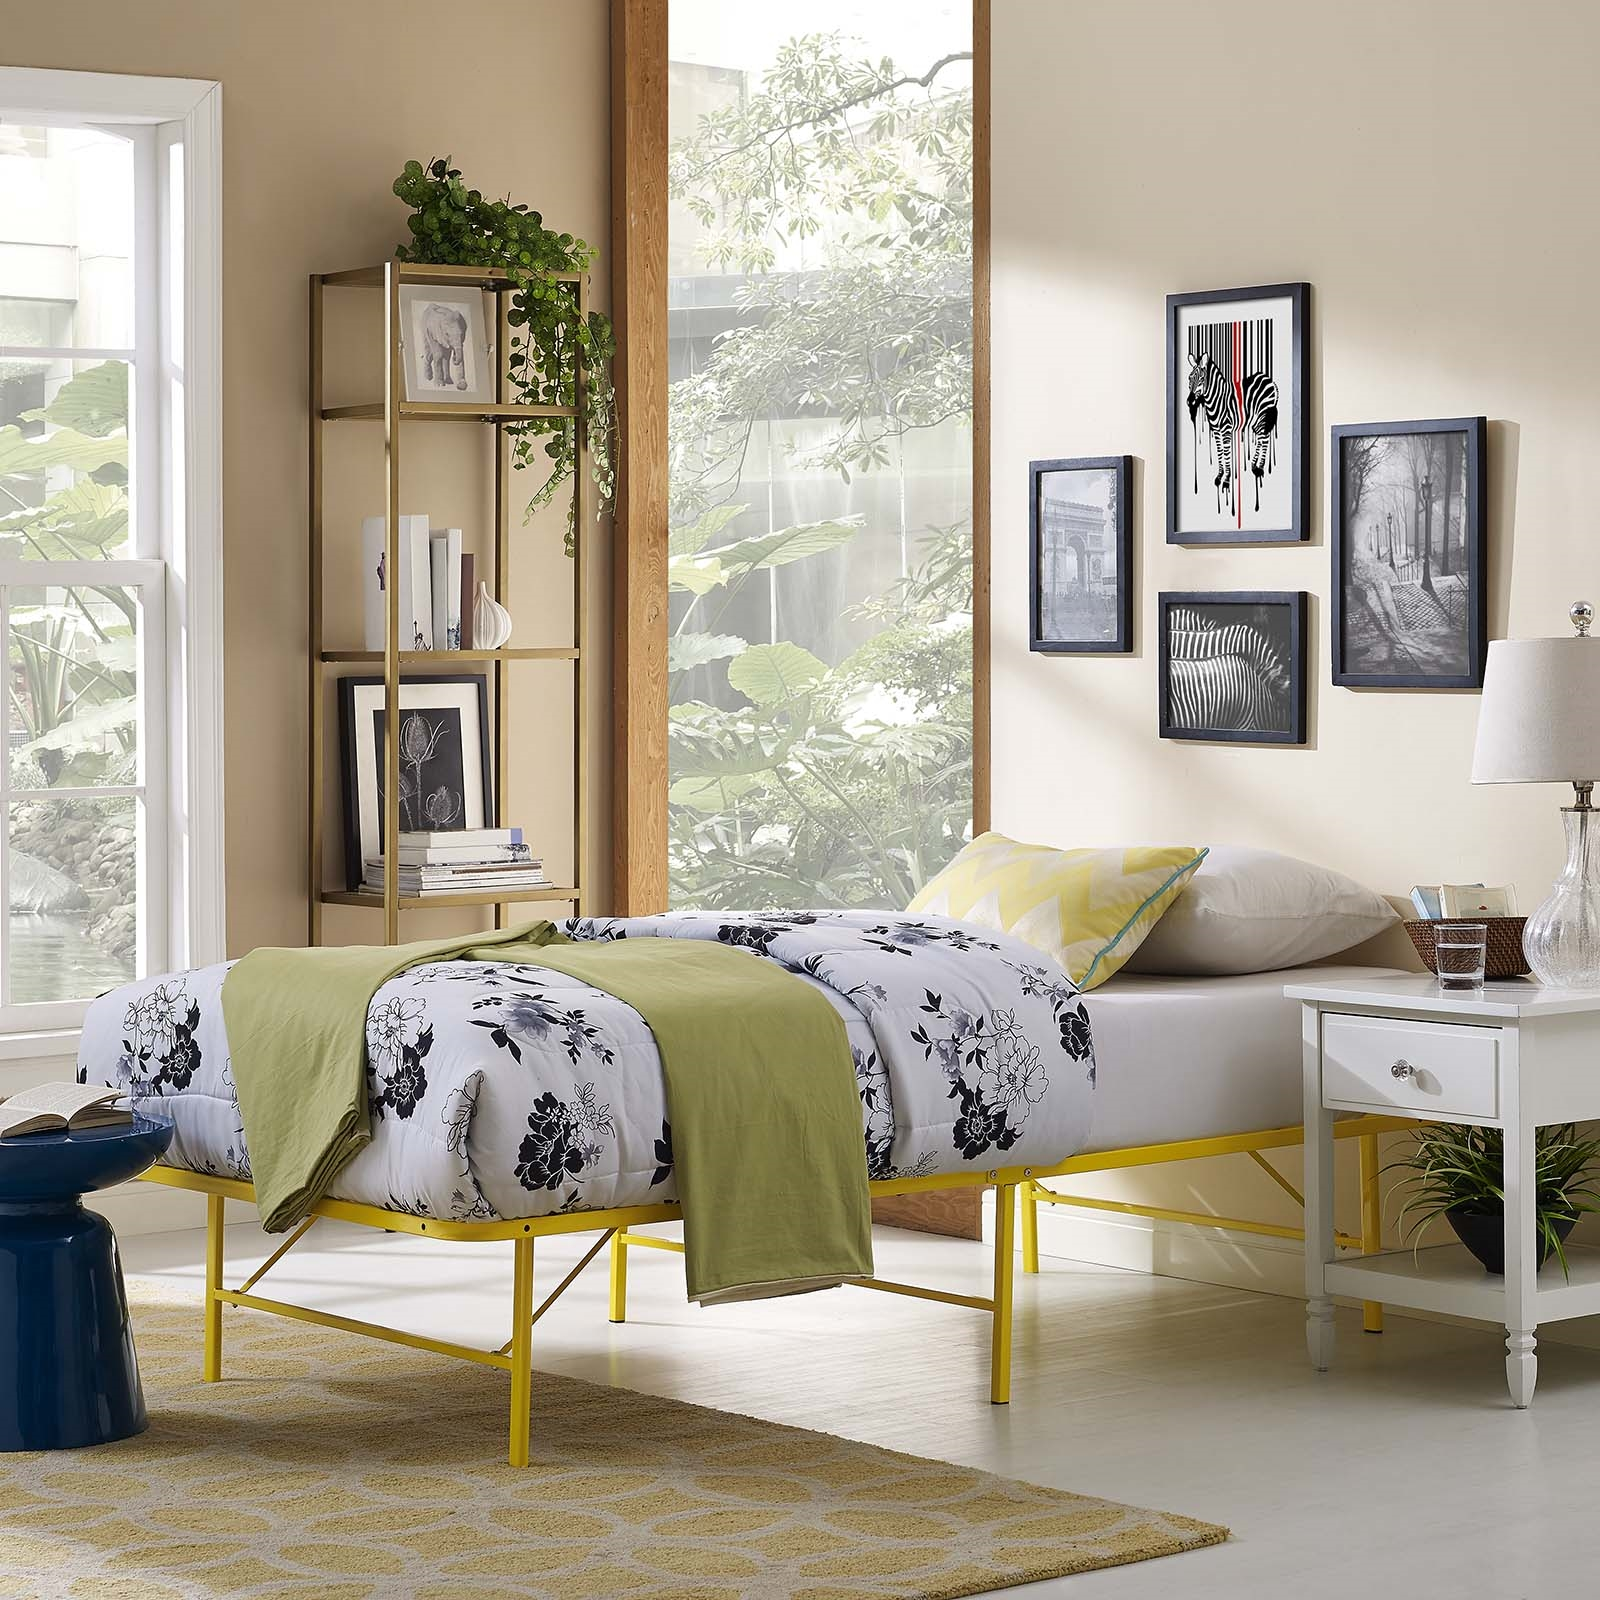 Horizon Twin Stainless Steel Bed Frame in Yellow